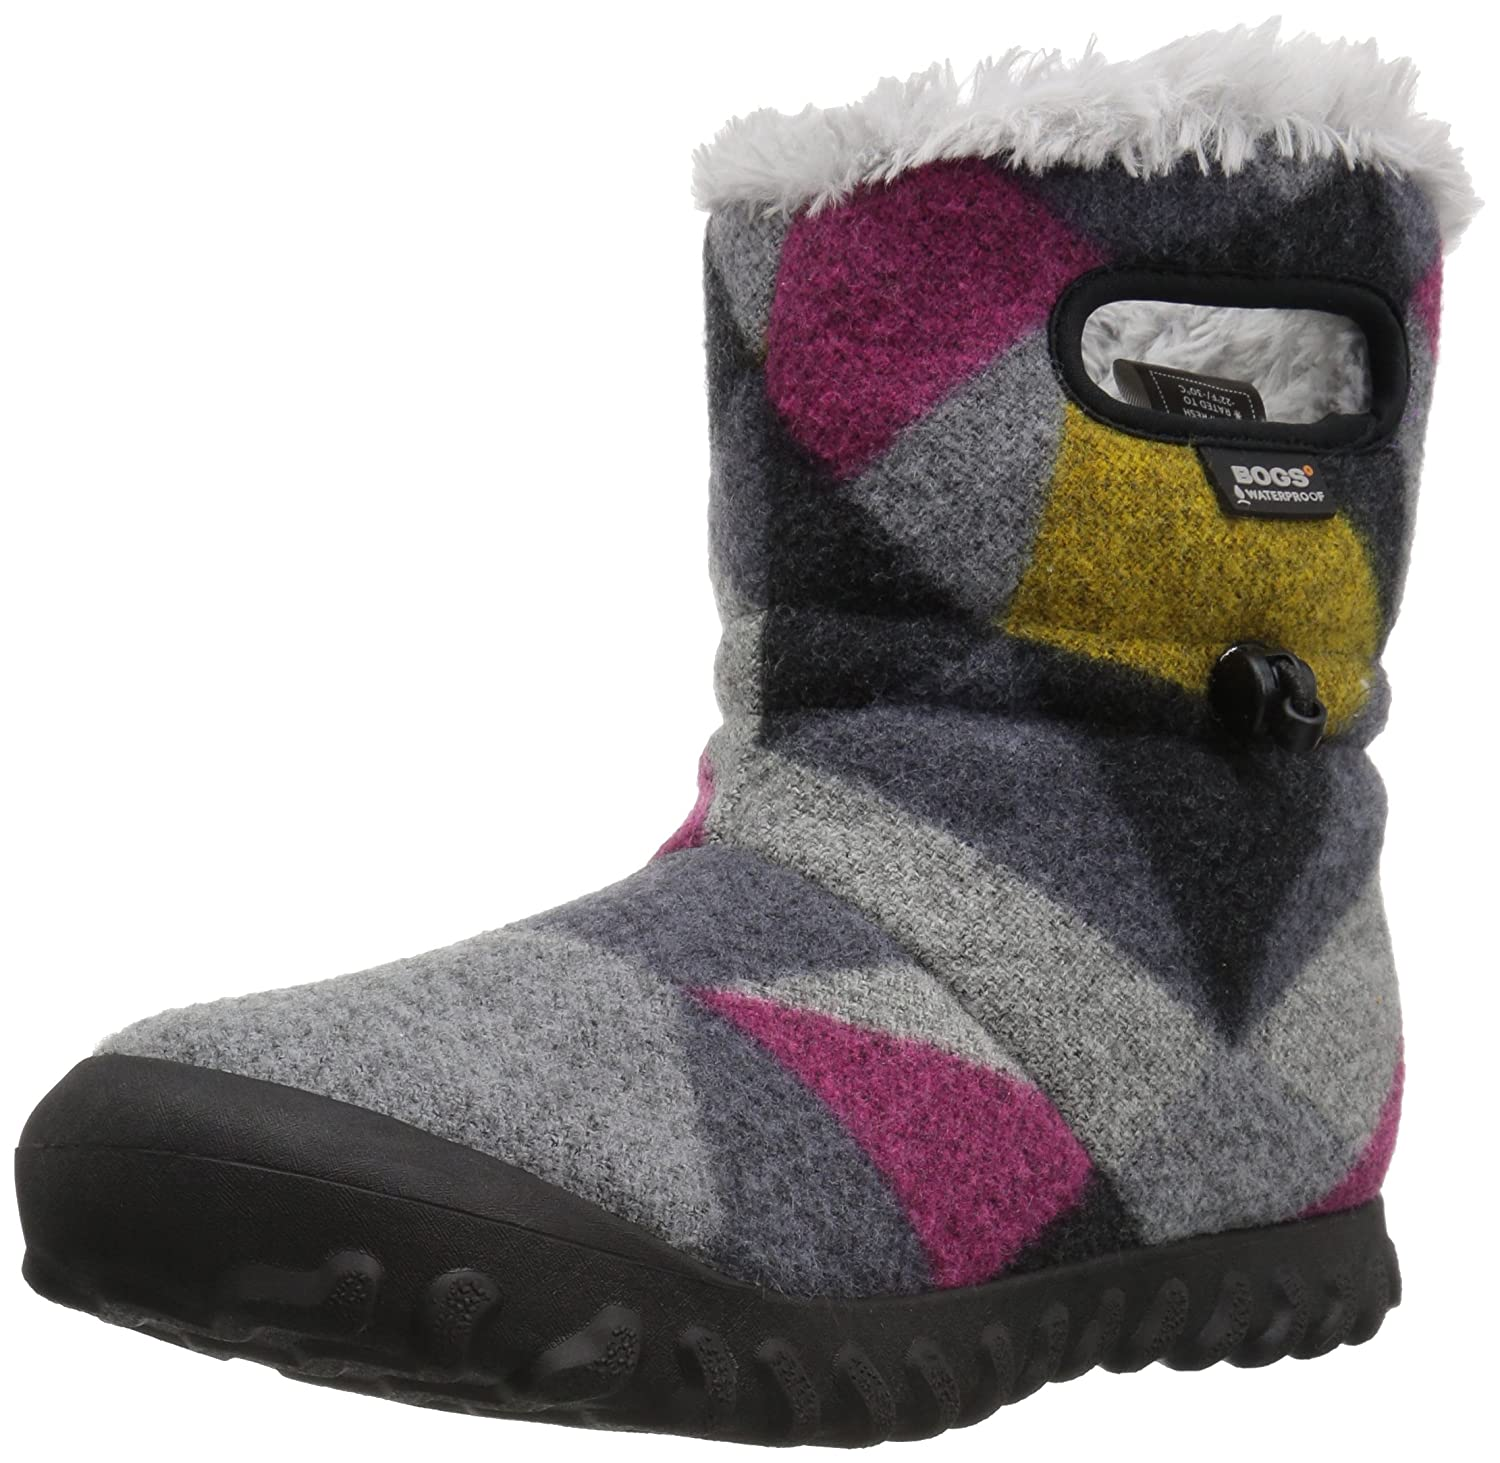 Bogs Women's Bmoc Wool Snow Boot B01N7AR1N3 7 B(M) US|Dark Gray/Gold